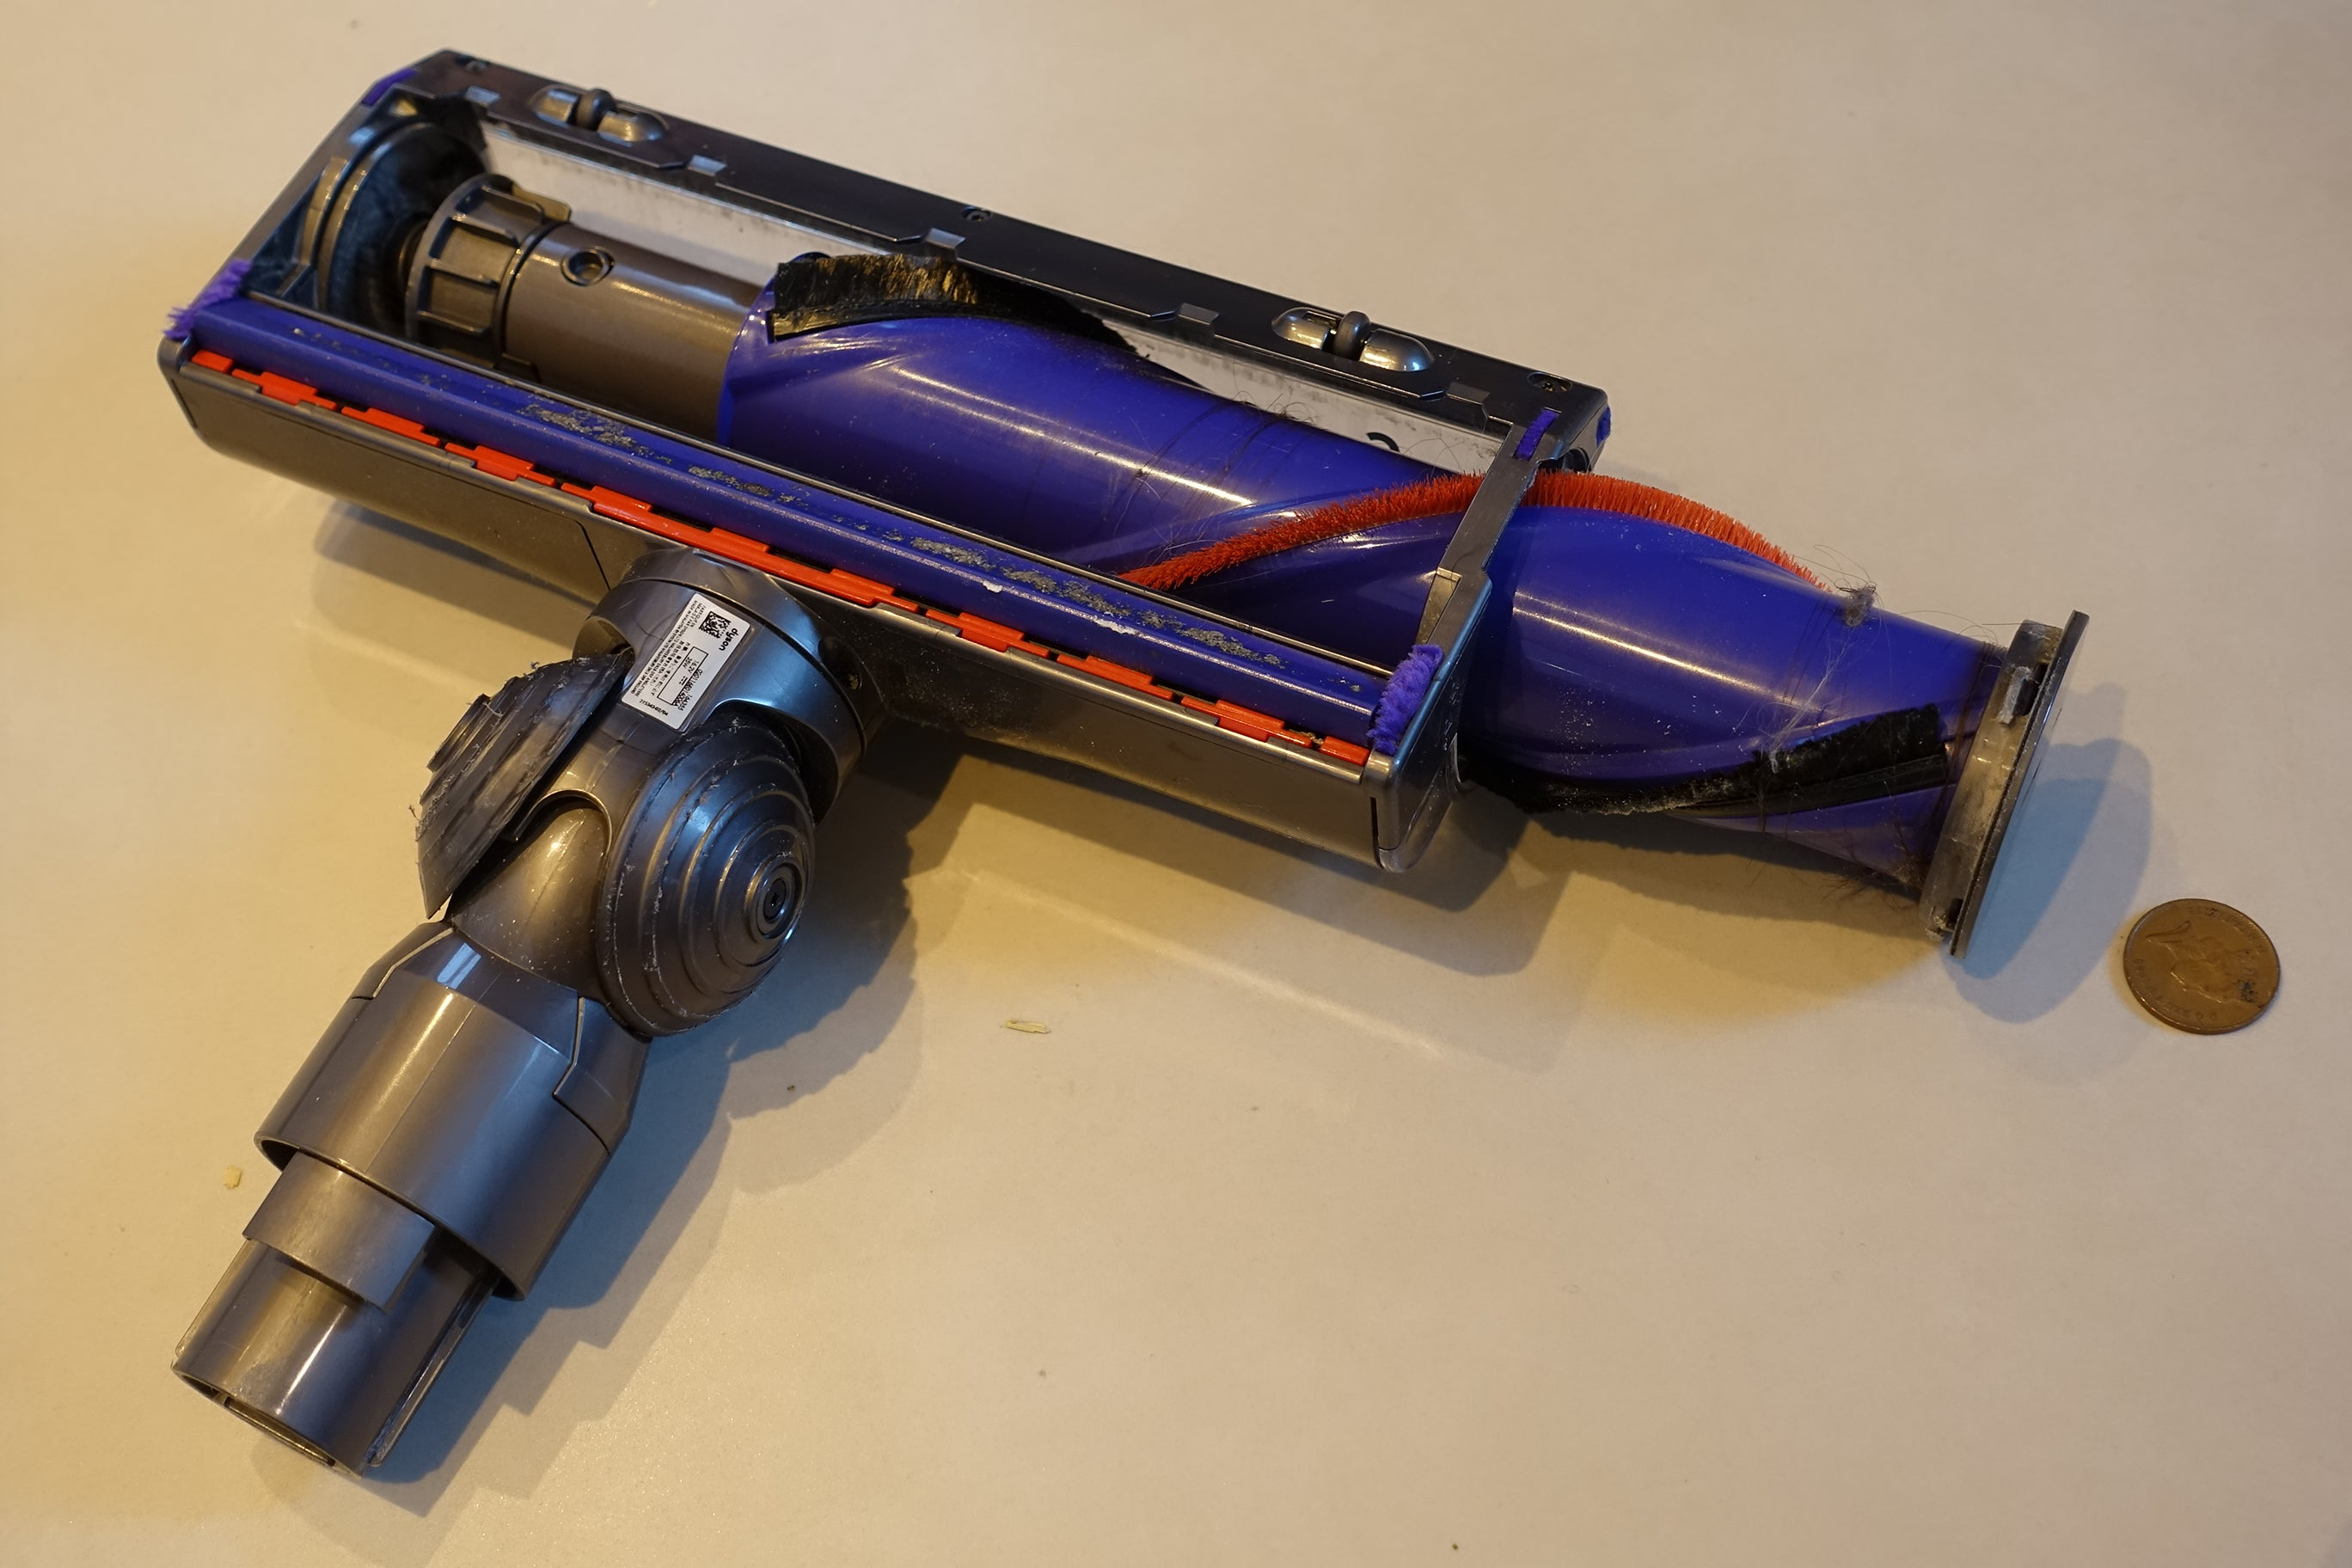 Why does my Dyson keep stopping and starting?